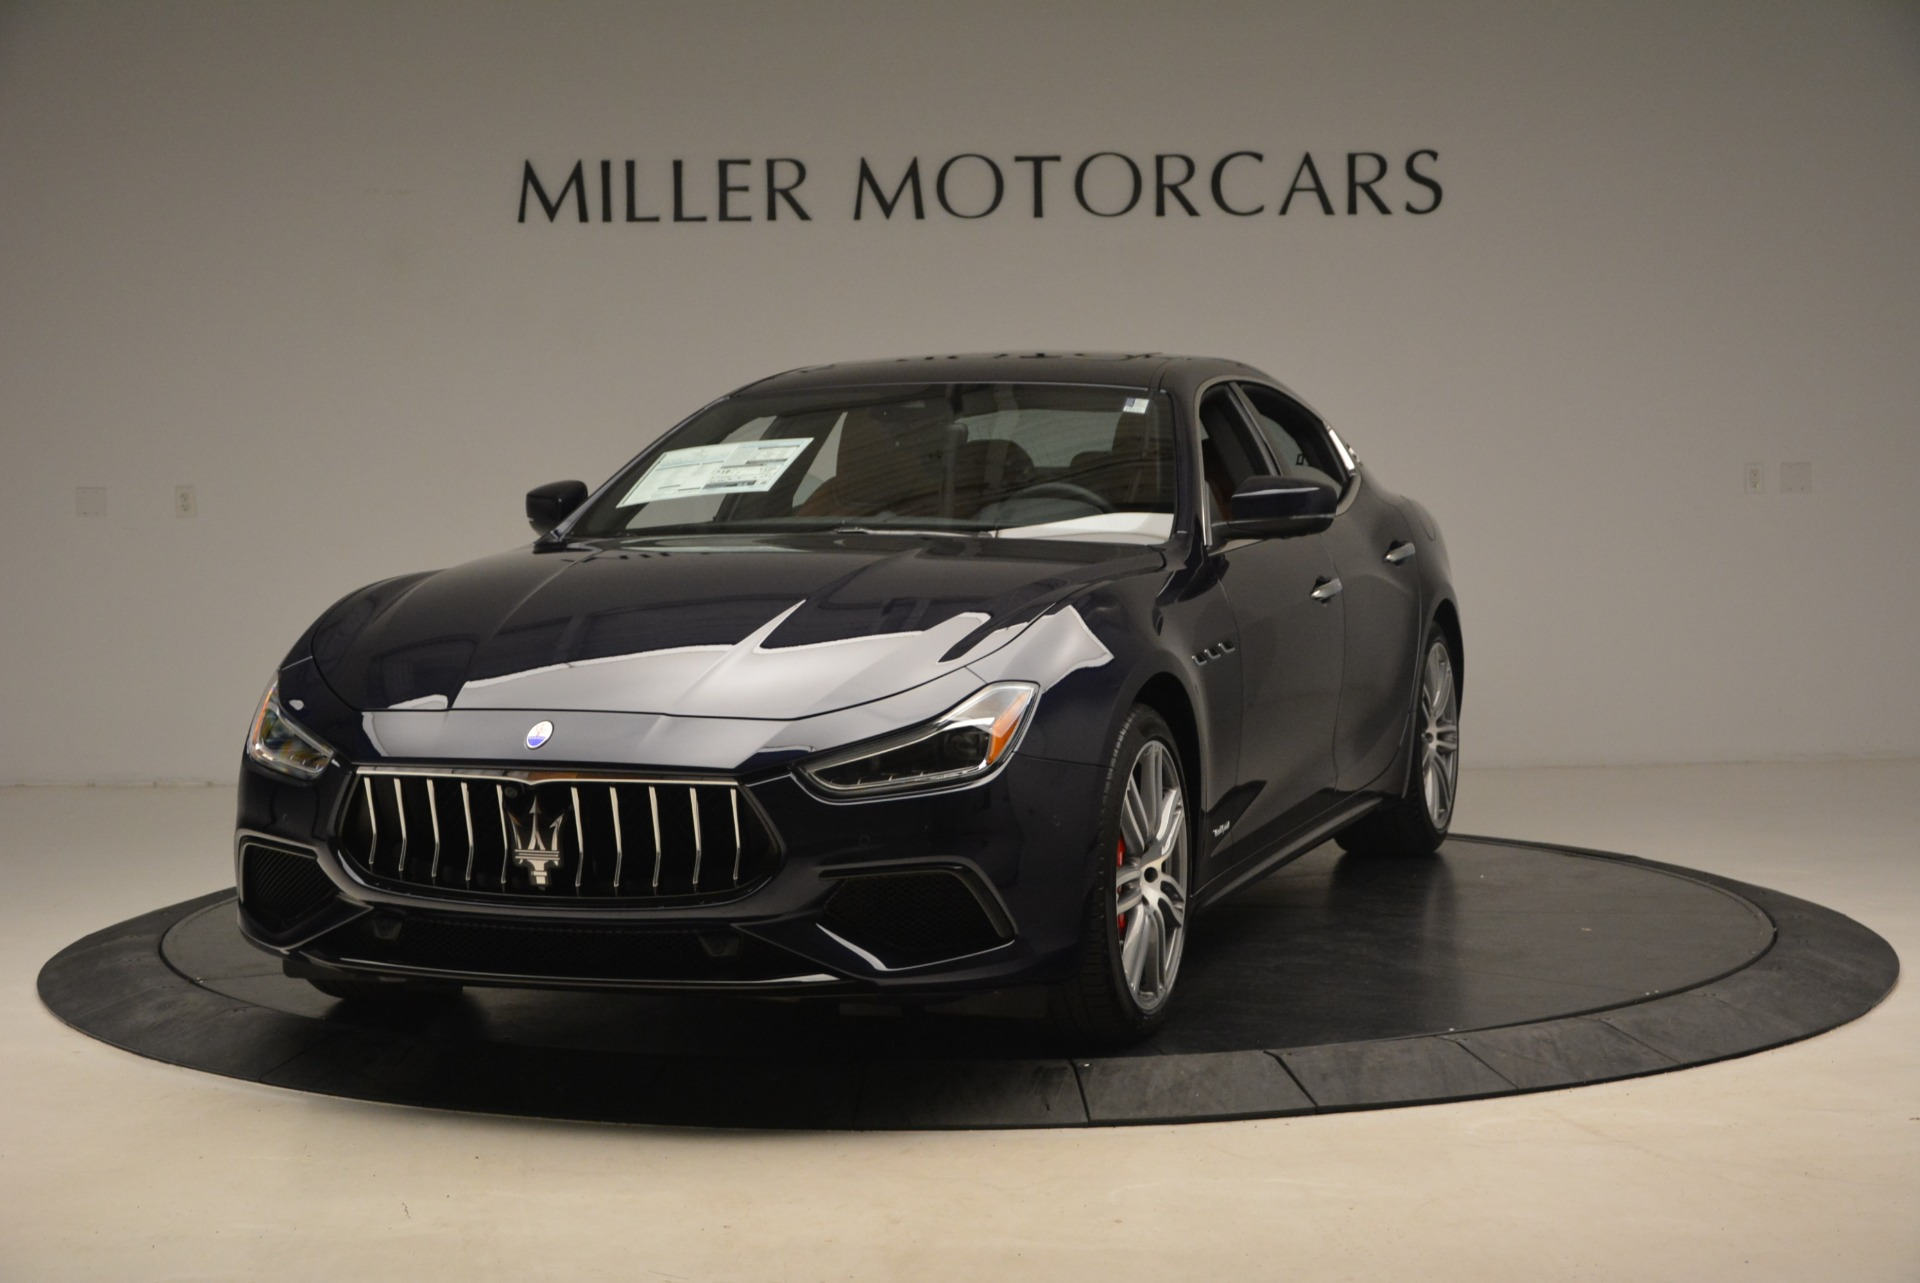 New 2018 Maserati Ghibli S Q4 GranSport for sale Sold at Rolls-Royce Motor Cars Greenwich in Greenwich CT 06830 1